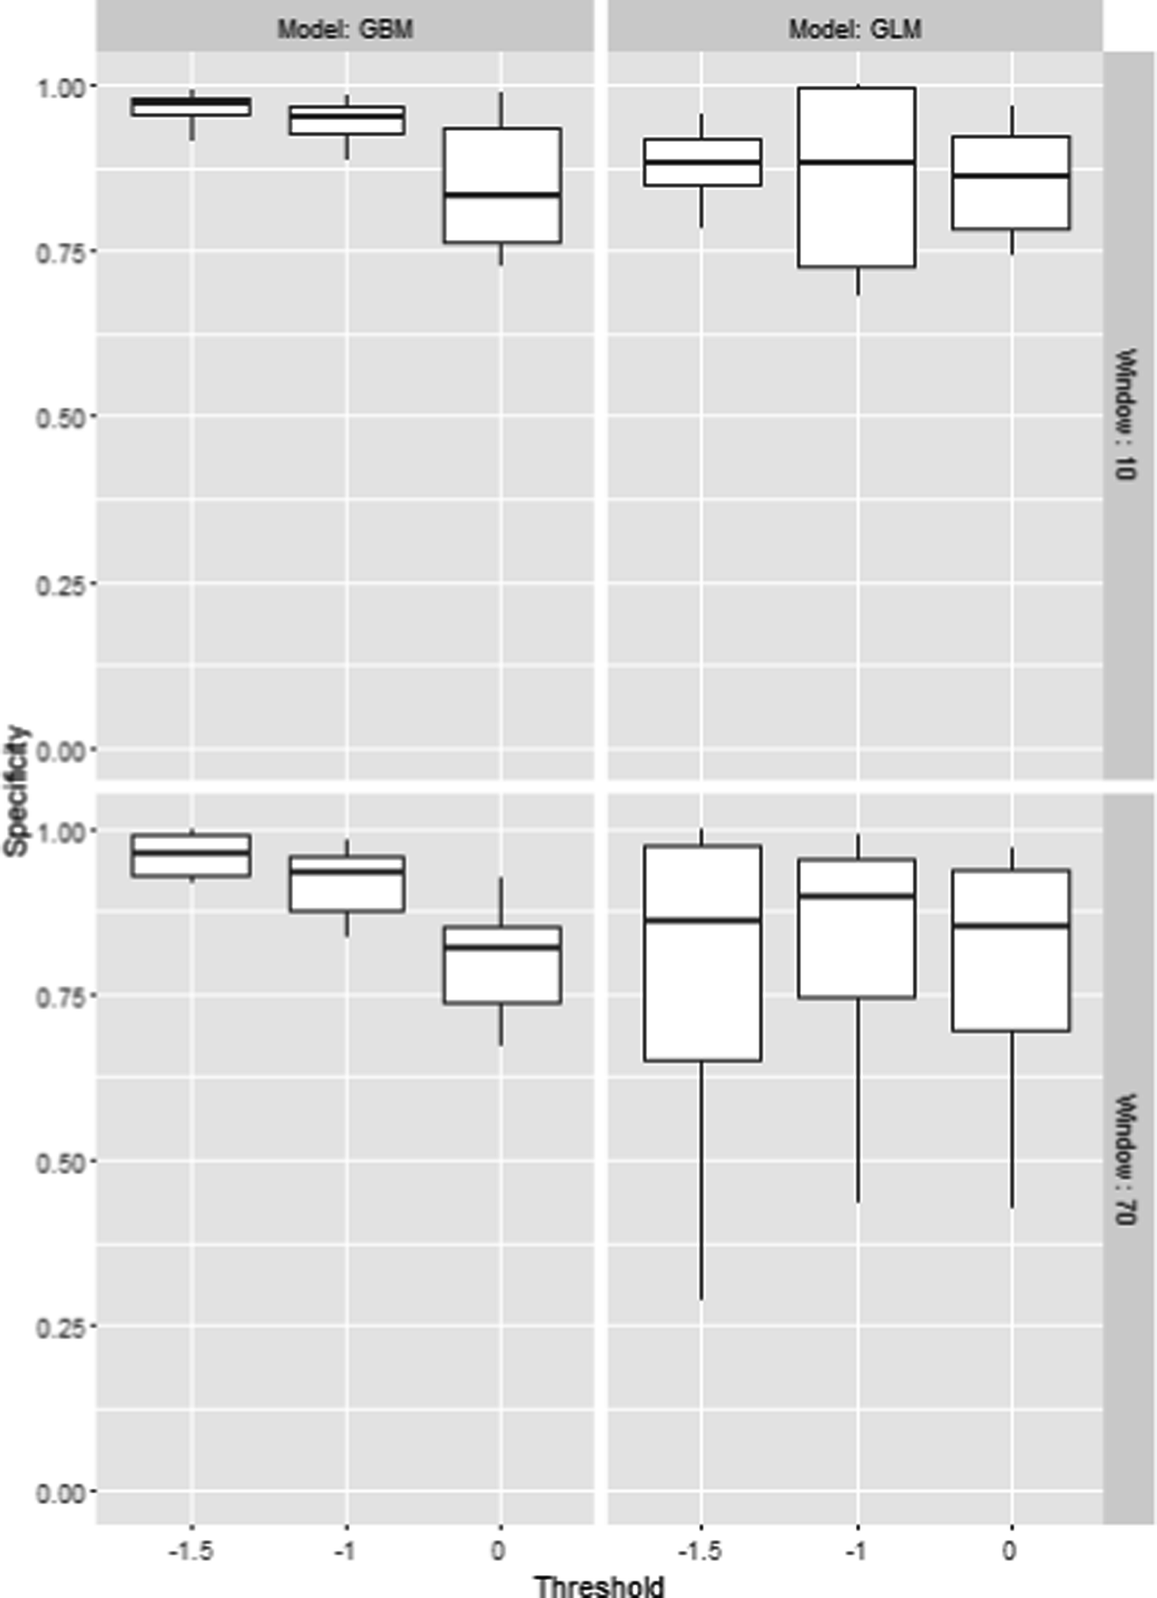 Bio-behavioral Modeling of Workload and Performance